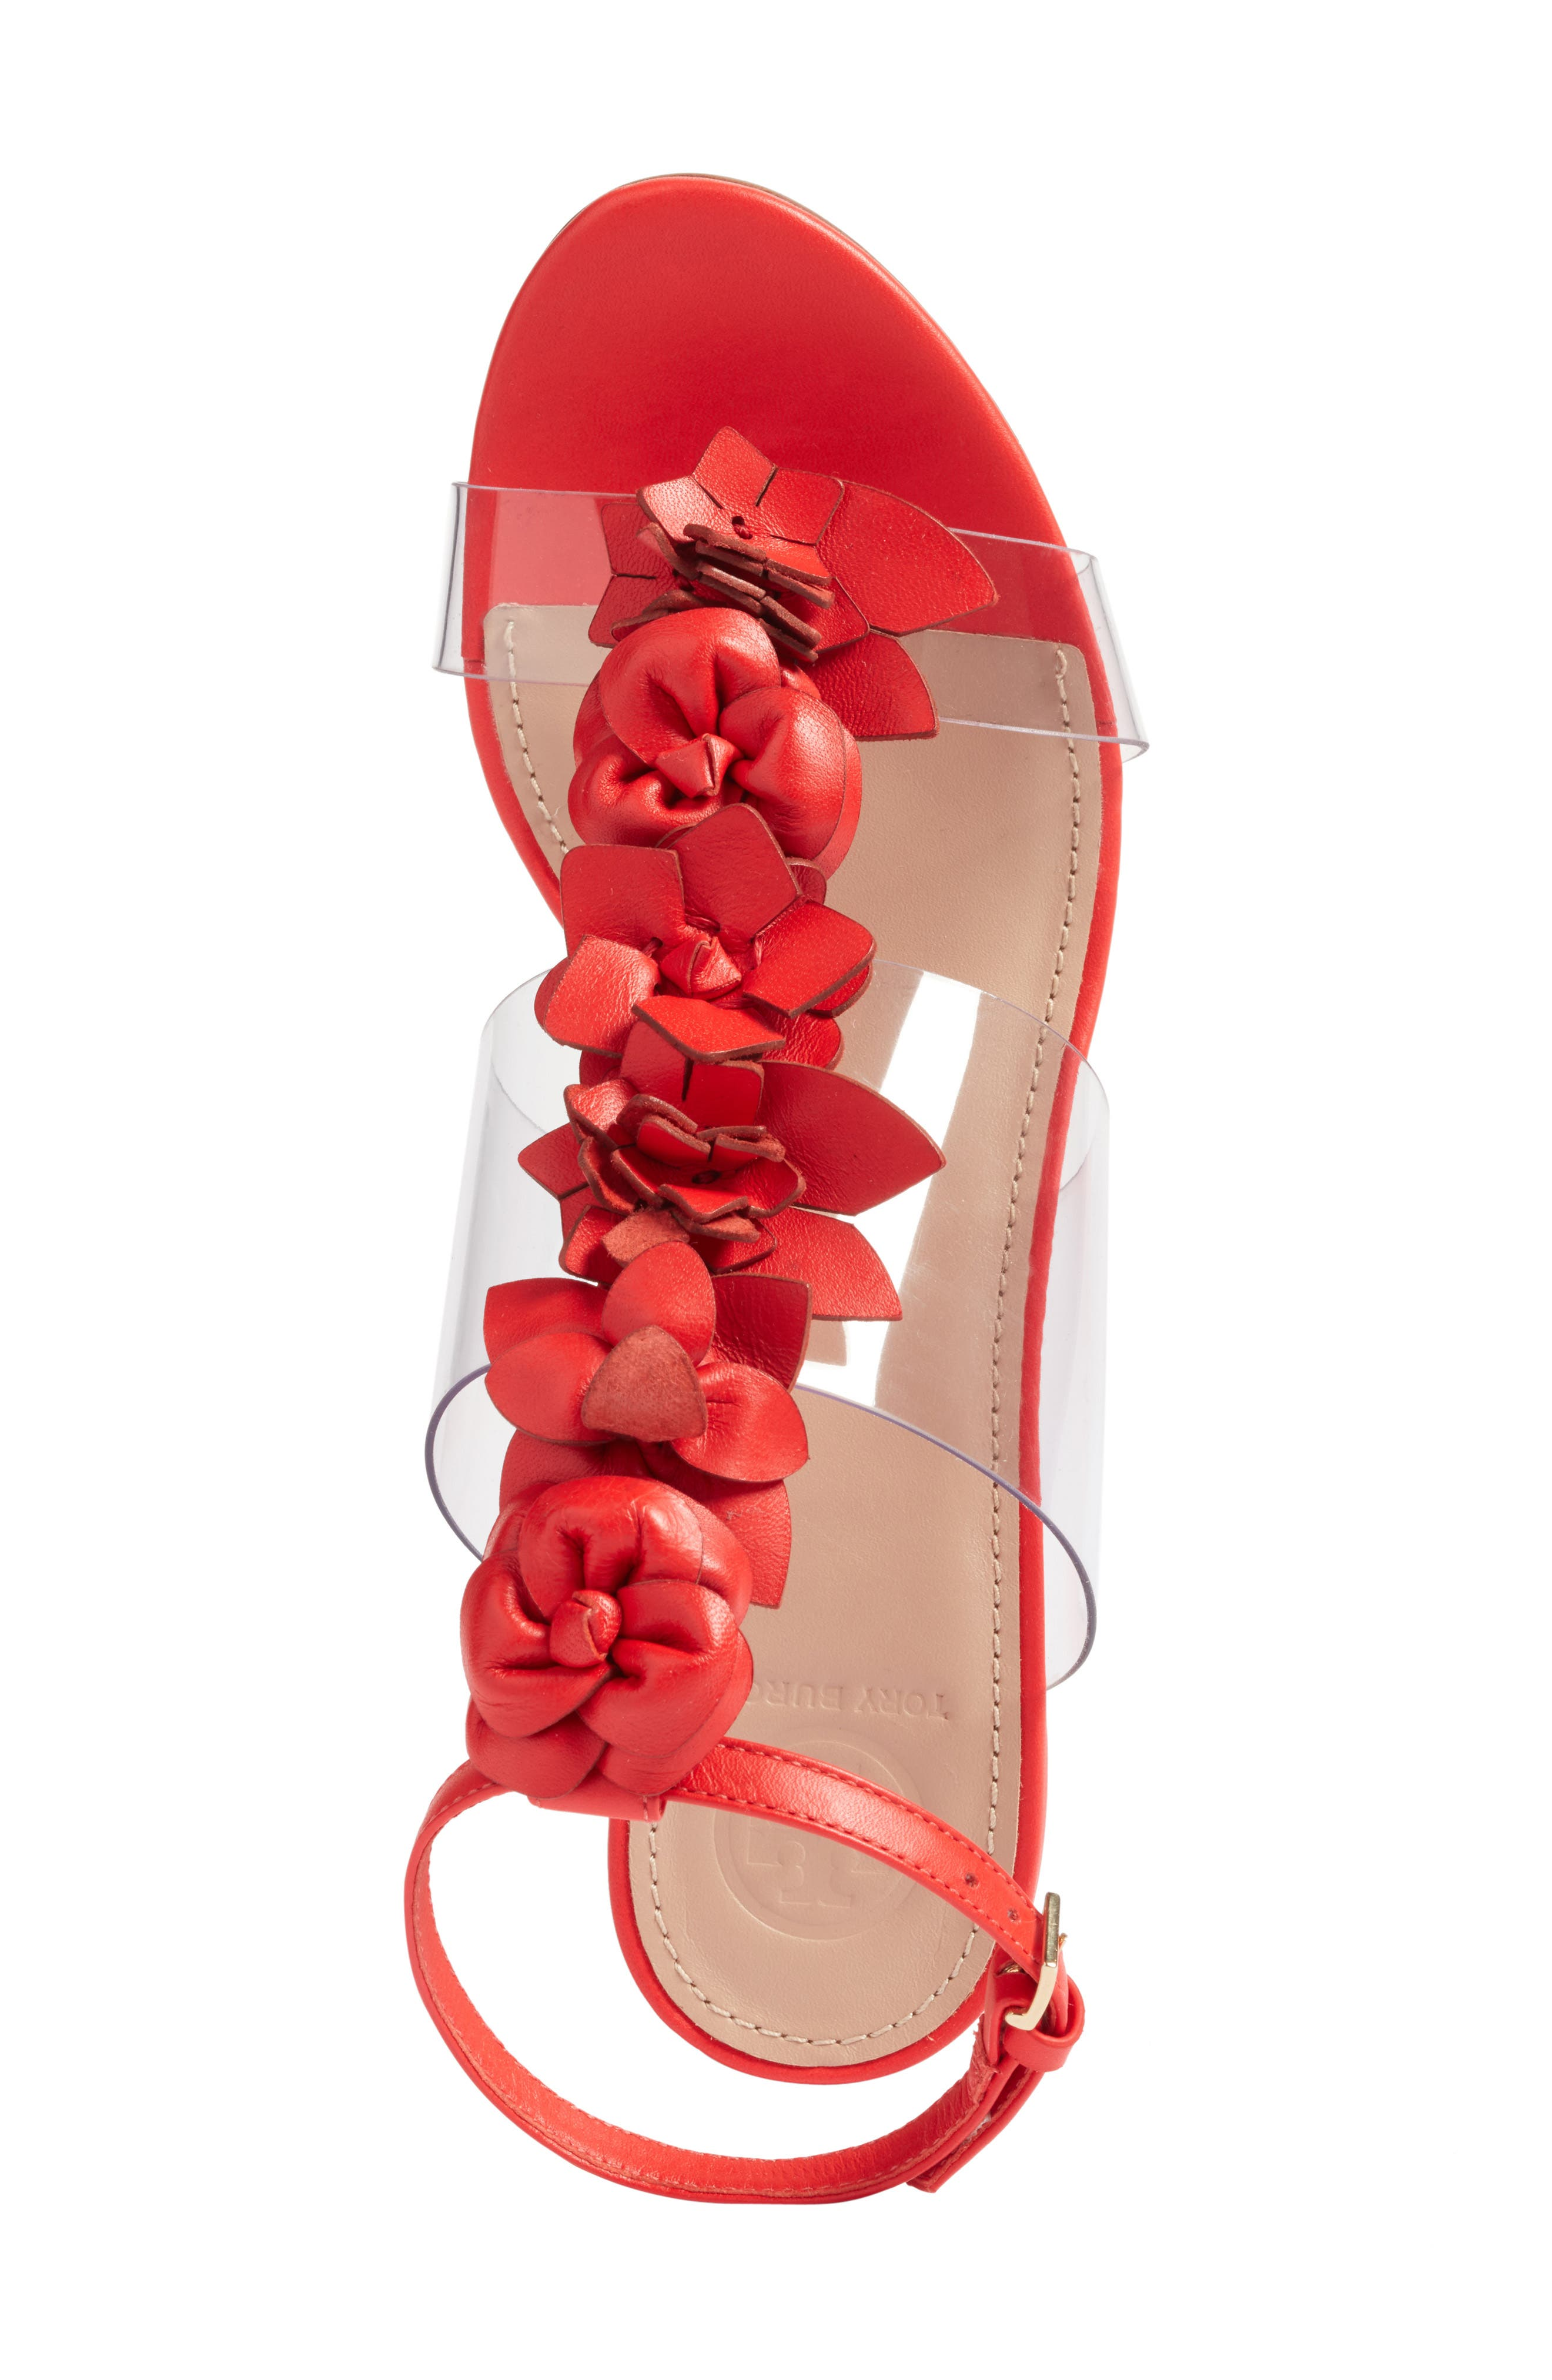 Blossom Sandal,                             Alternate thumbnail 2, color,                             Red Volcano/ Clear